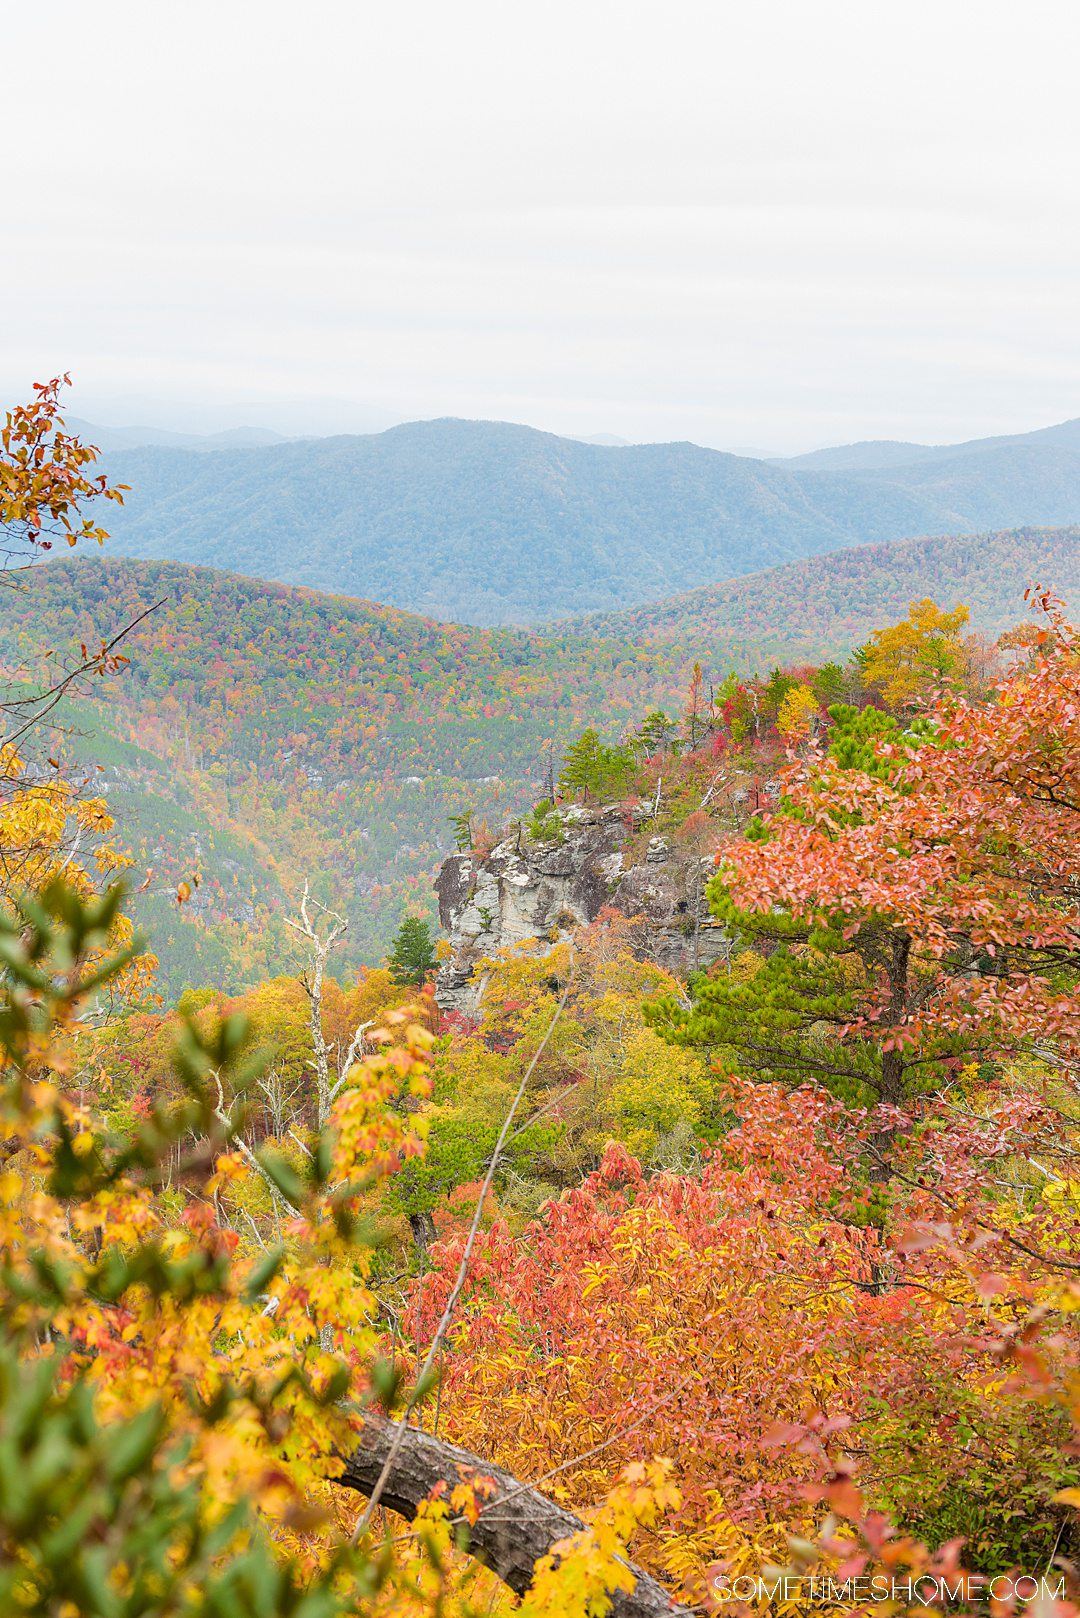 One of the best things to do in the North Carolina mountains is hike! And we have your guide to the best hiking near Morganton, NC in Burke County near the Blue Ridge Mountains. Fall colors were at their peak in the Appalachian Mountains range at the time we took this beautiful photography at Table Rock in Linville Gorge Wilderness area. #sometimeshome #besthikingnorthcarolina #autumncolors #peakfallleaves #blueridgemountains